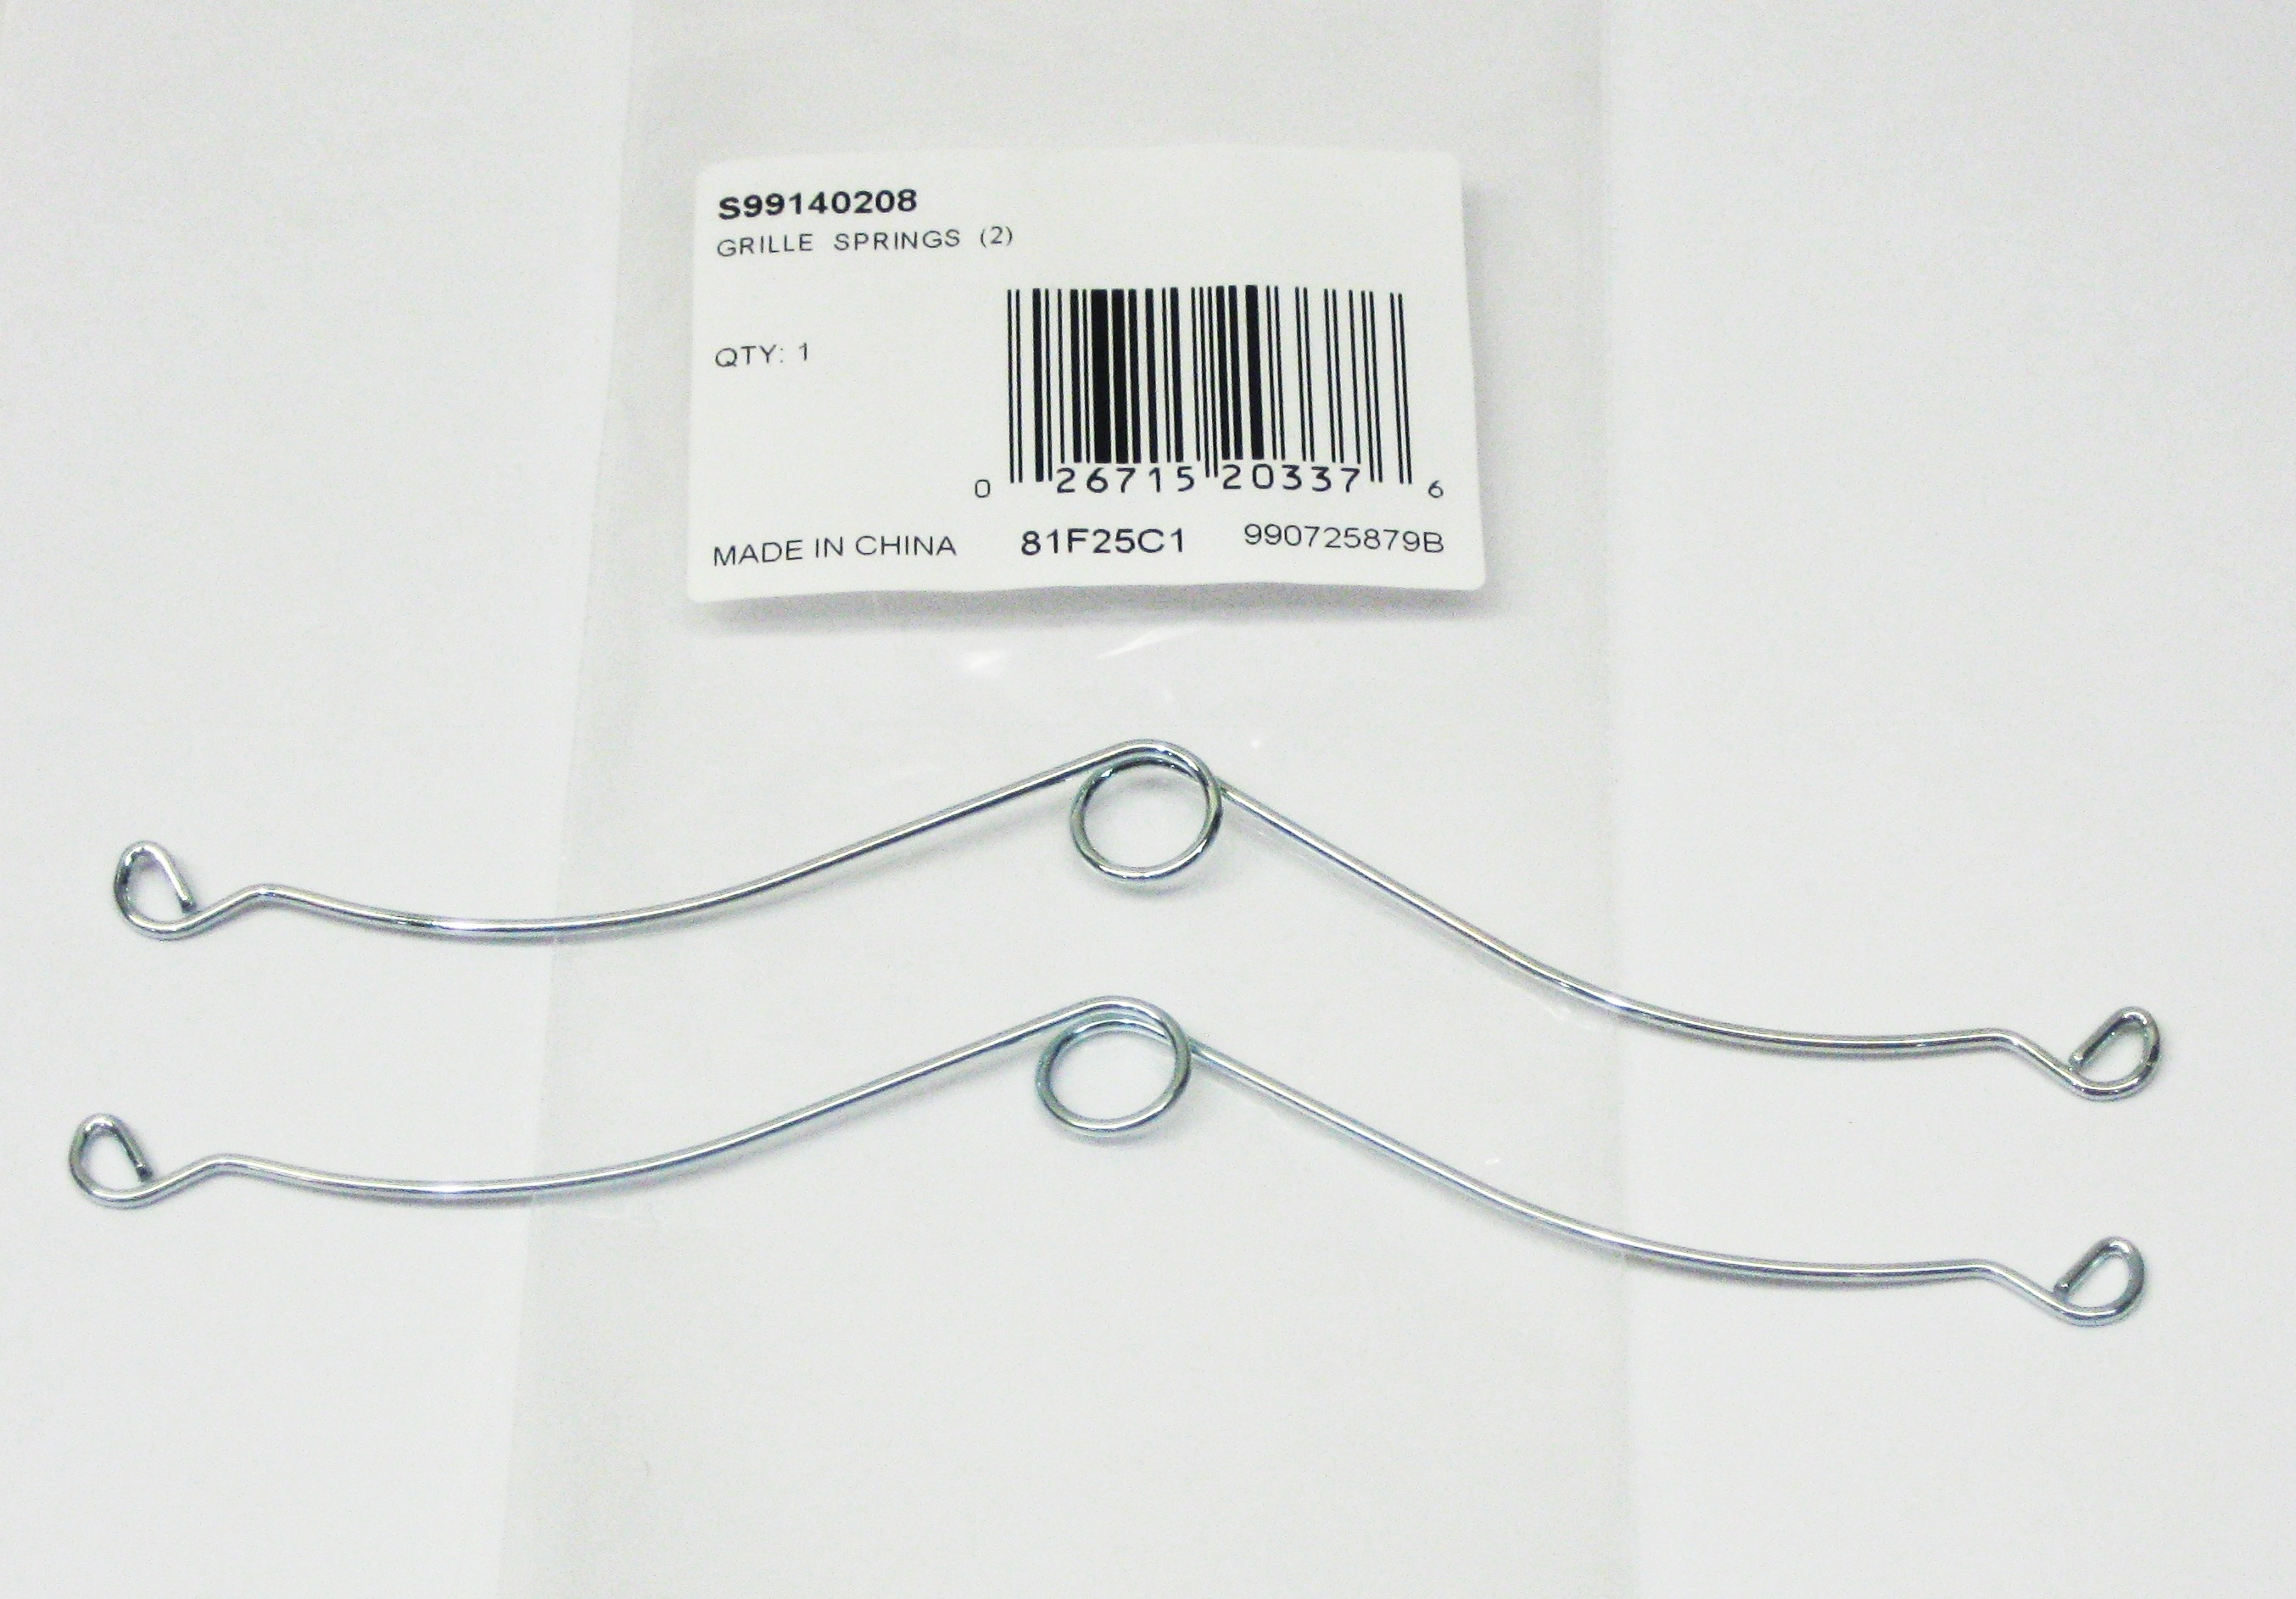 Broan Nutone S Grille Springs Clips Set Of 2